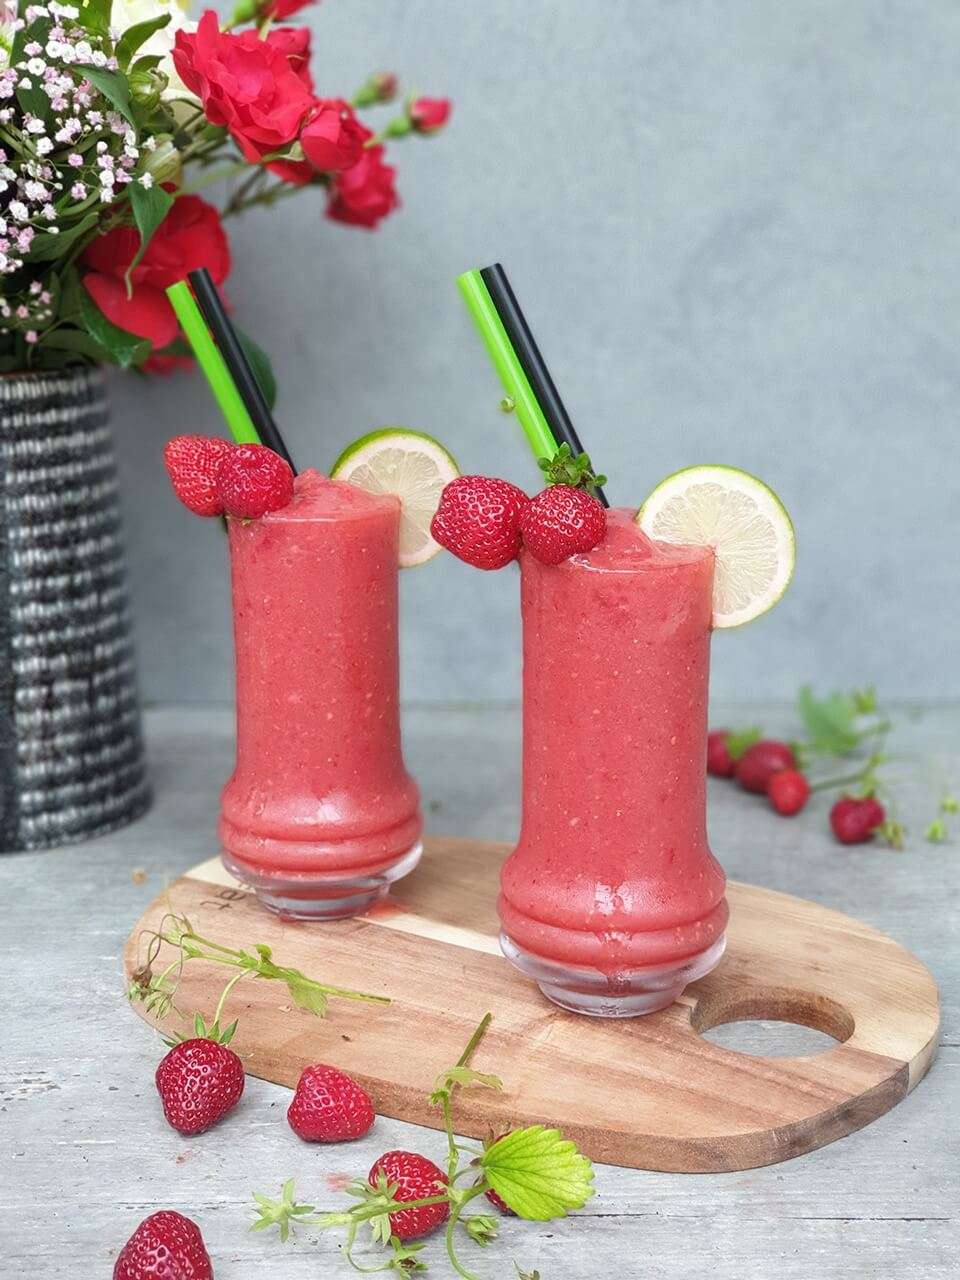 Strawberry frozen margarita